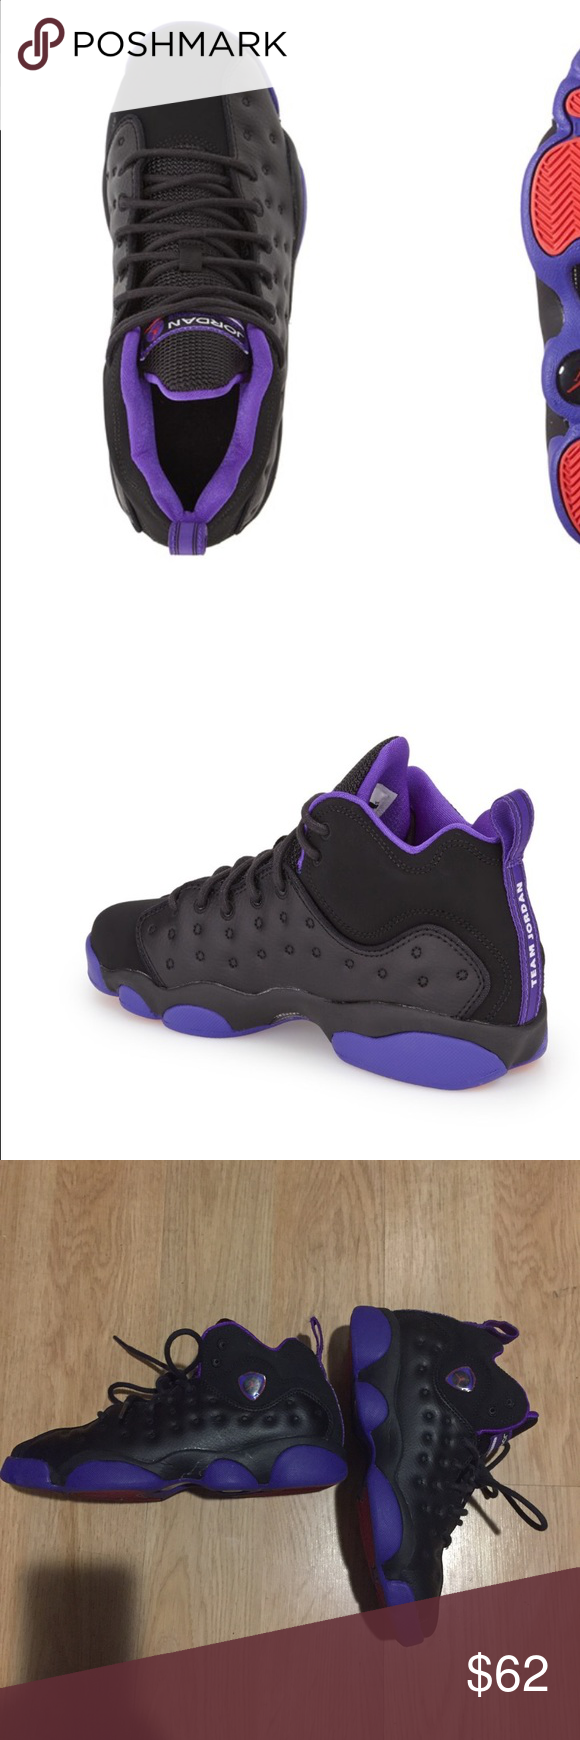 4485ae3e4a7254 Jordan Jumpman Team II GG 820276-017 Jordan Jumpman Team II GG 820276-017  Black Glow Purple Grade School US Size 5y beautiful Jordan . It run a half  small.